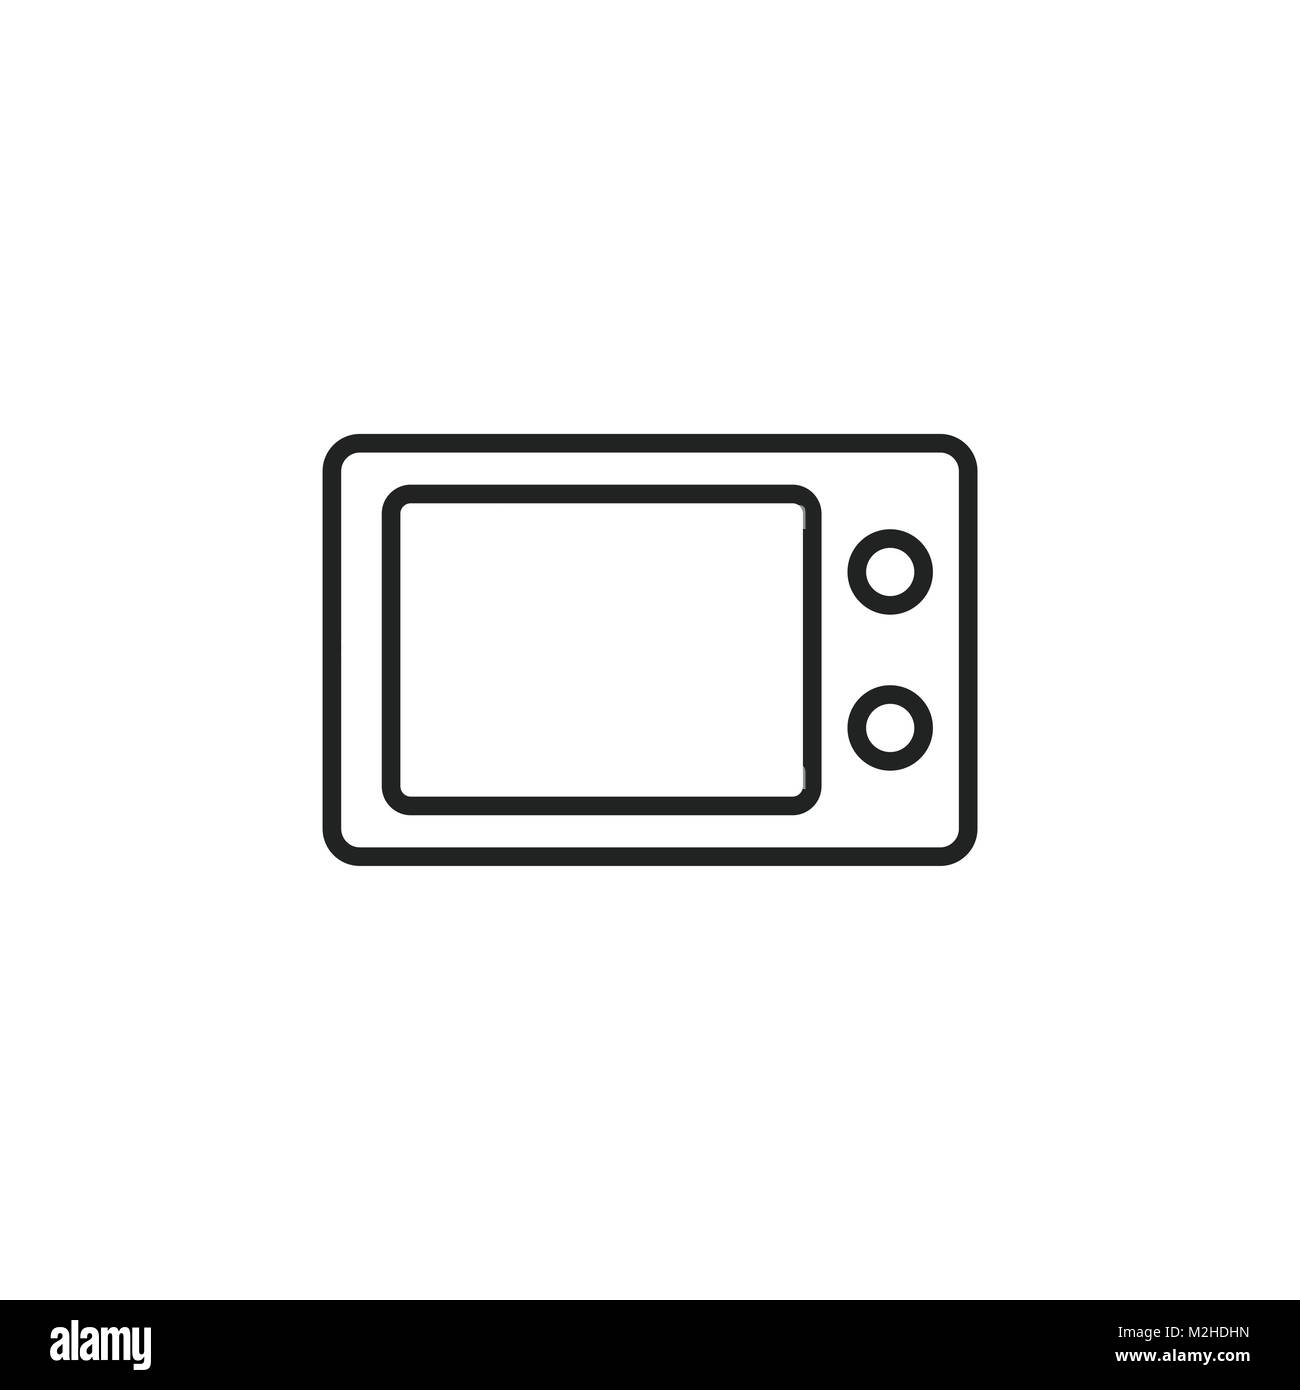 Oven black and white stock photos images alamy microwave oven symbol logo illustration stock image biocorpaavc